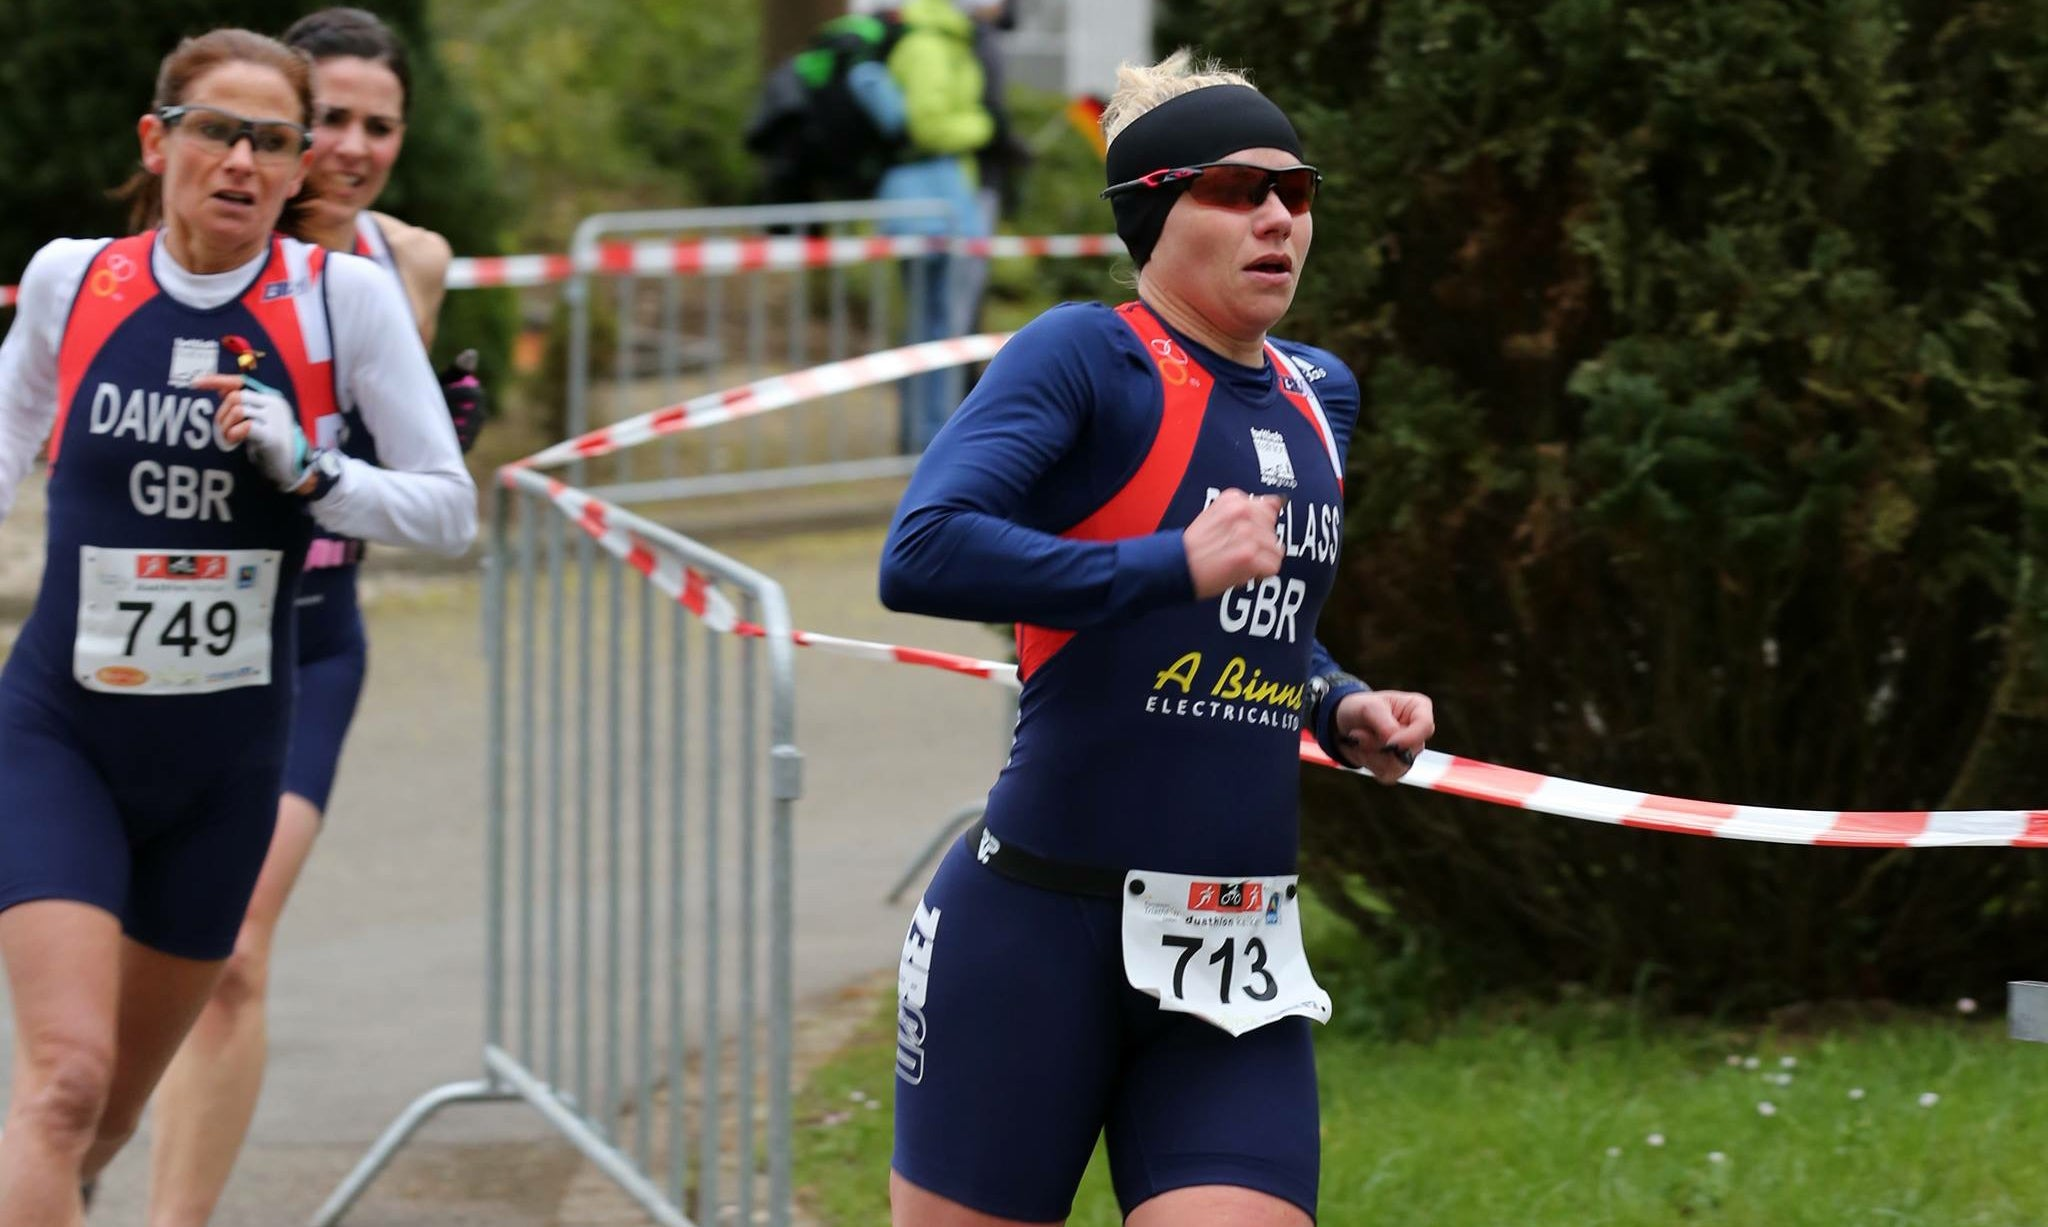 Louise Douglass GB Duathlete